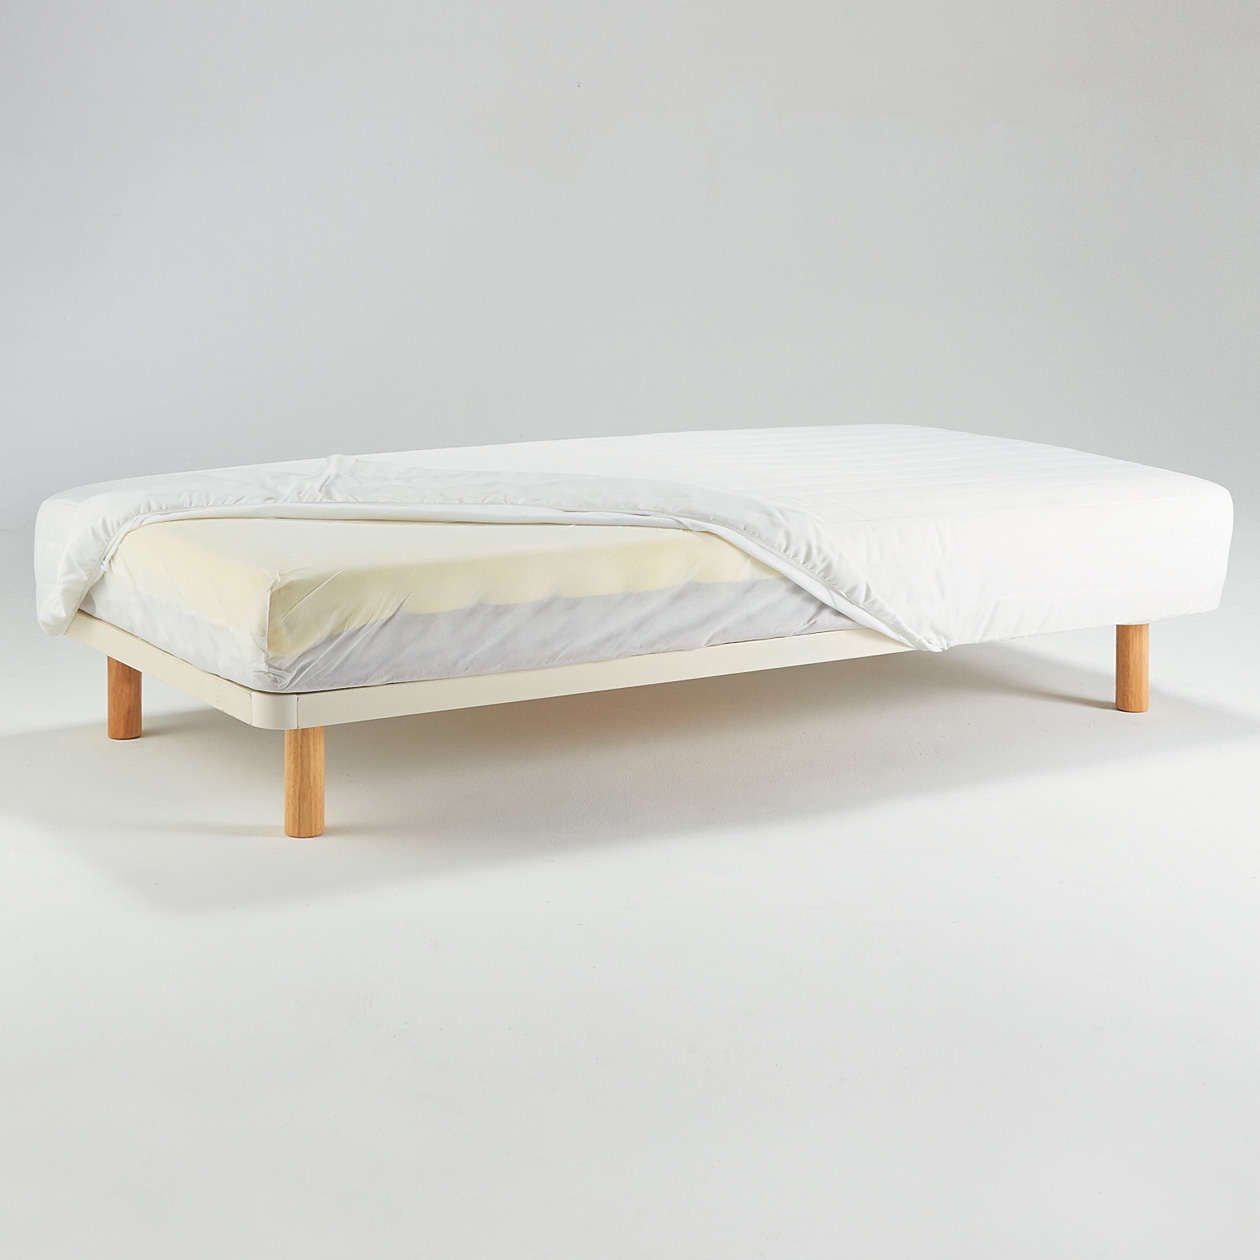 household bedmattress